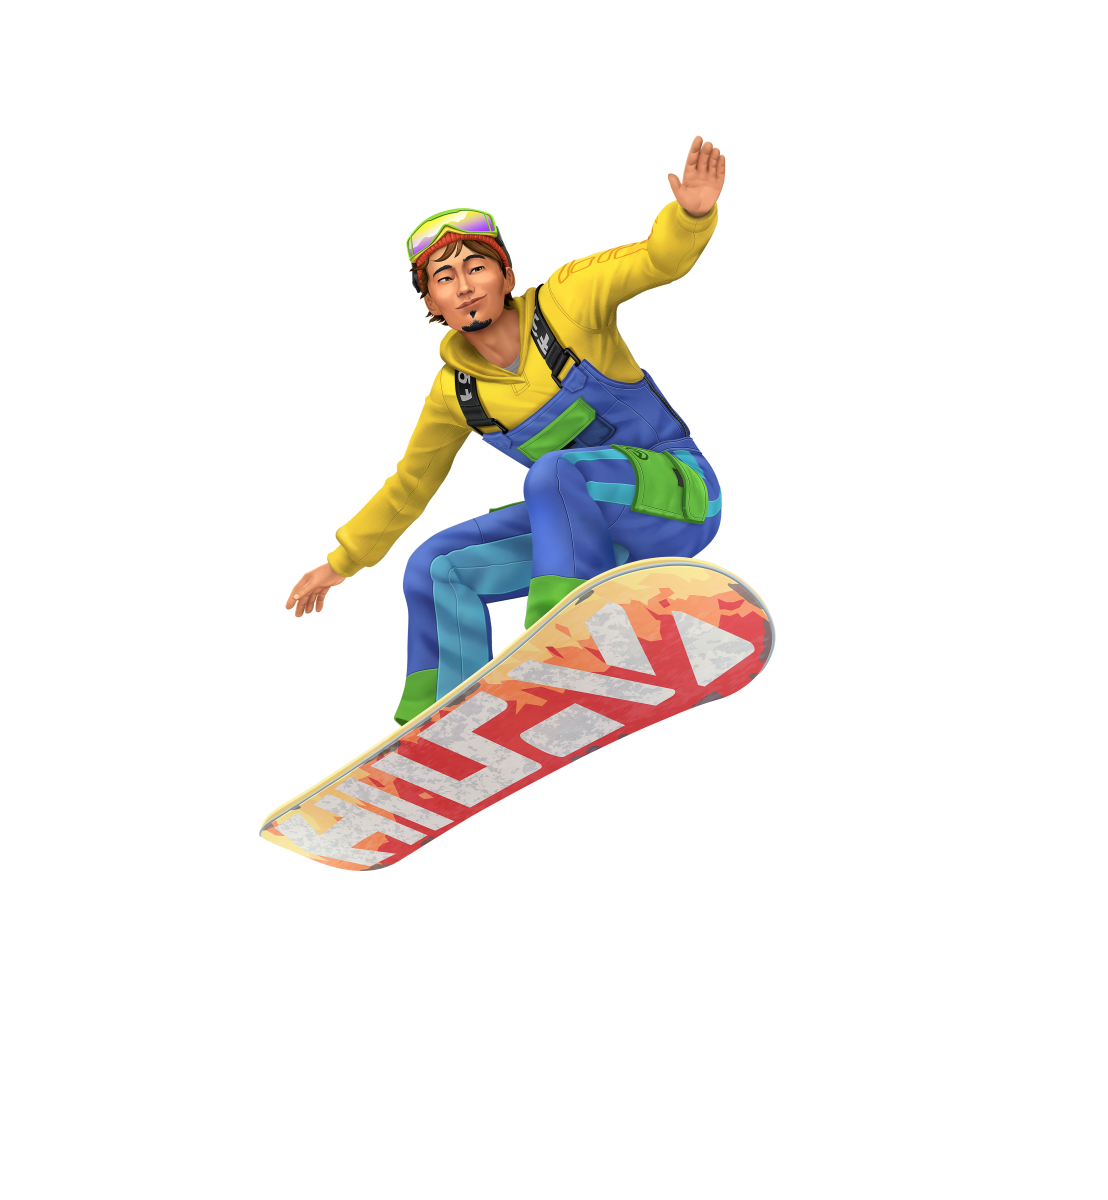 SIMS4_EP10_Snowy-Escape_Snowboarder_RGB.png